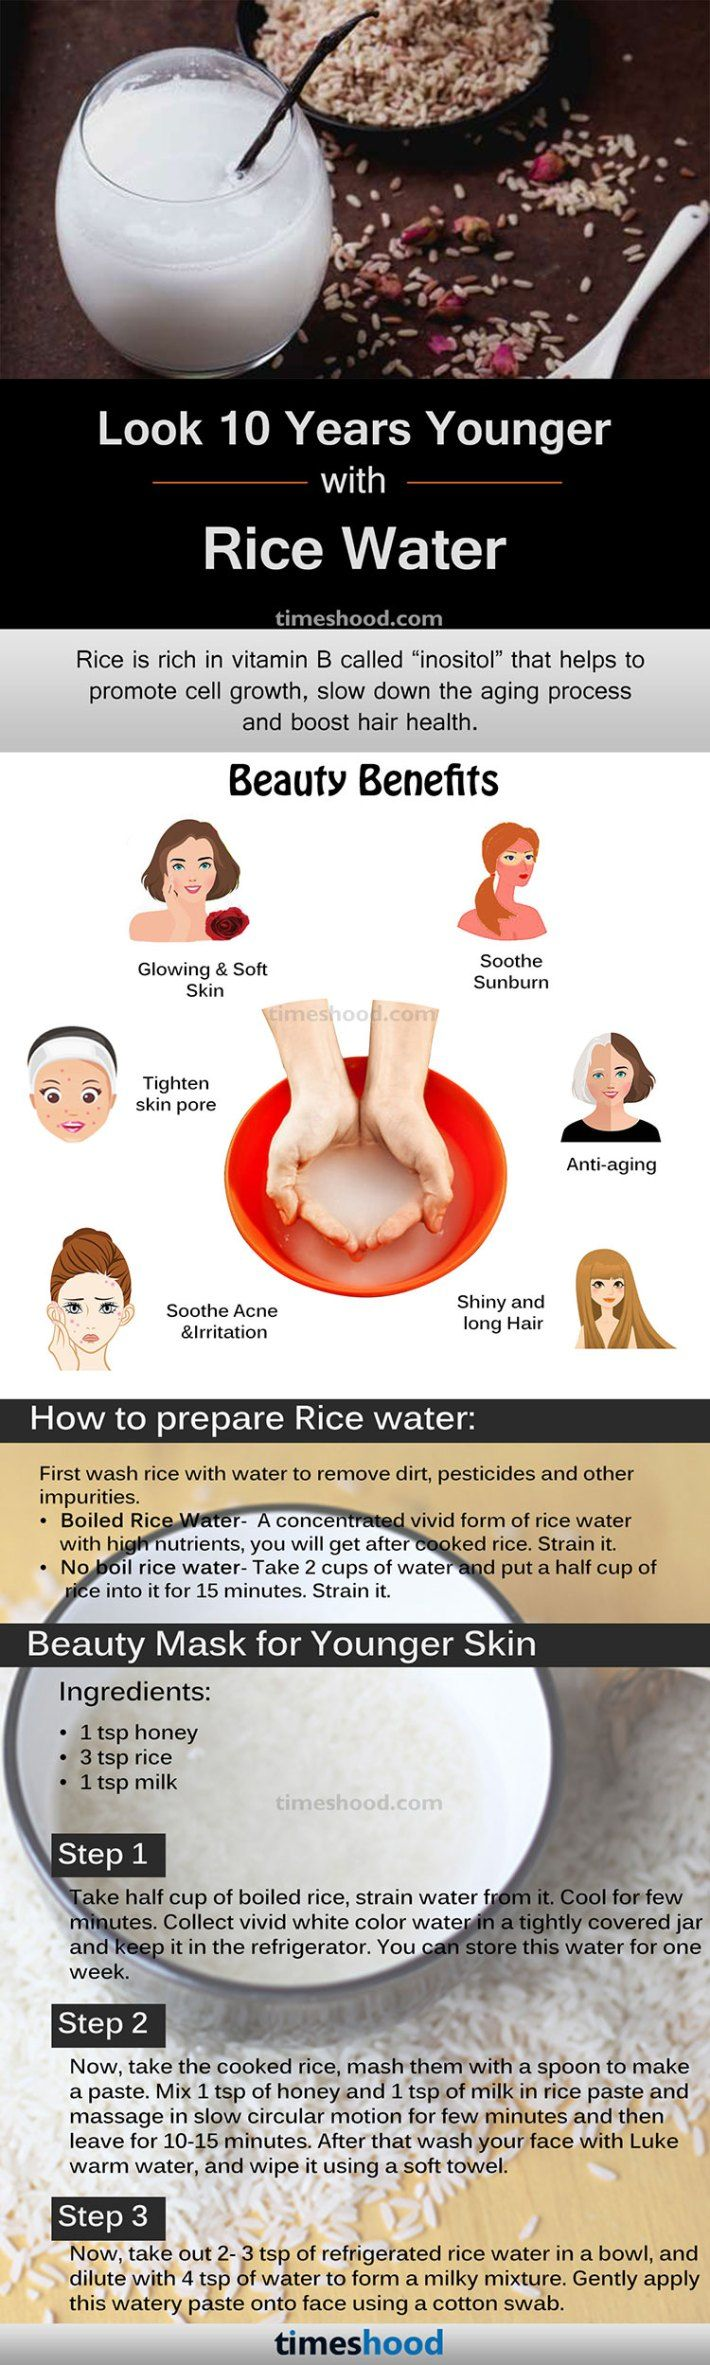 Rice Water Benefits How To Prepare For Skin And Hair Rice Water For Skin Care And Hair Growth Anti Aging Skin Products Rice Water Benefits Younger Skin